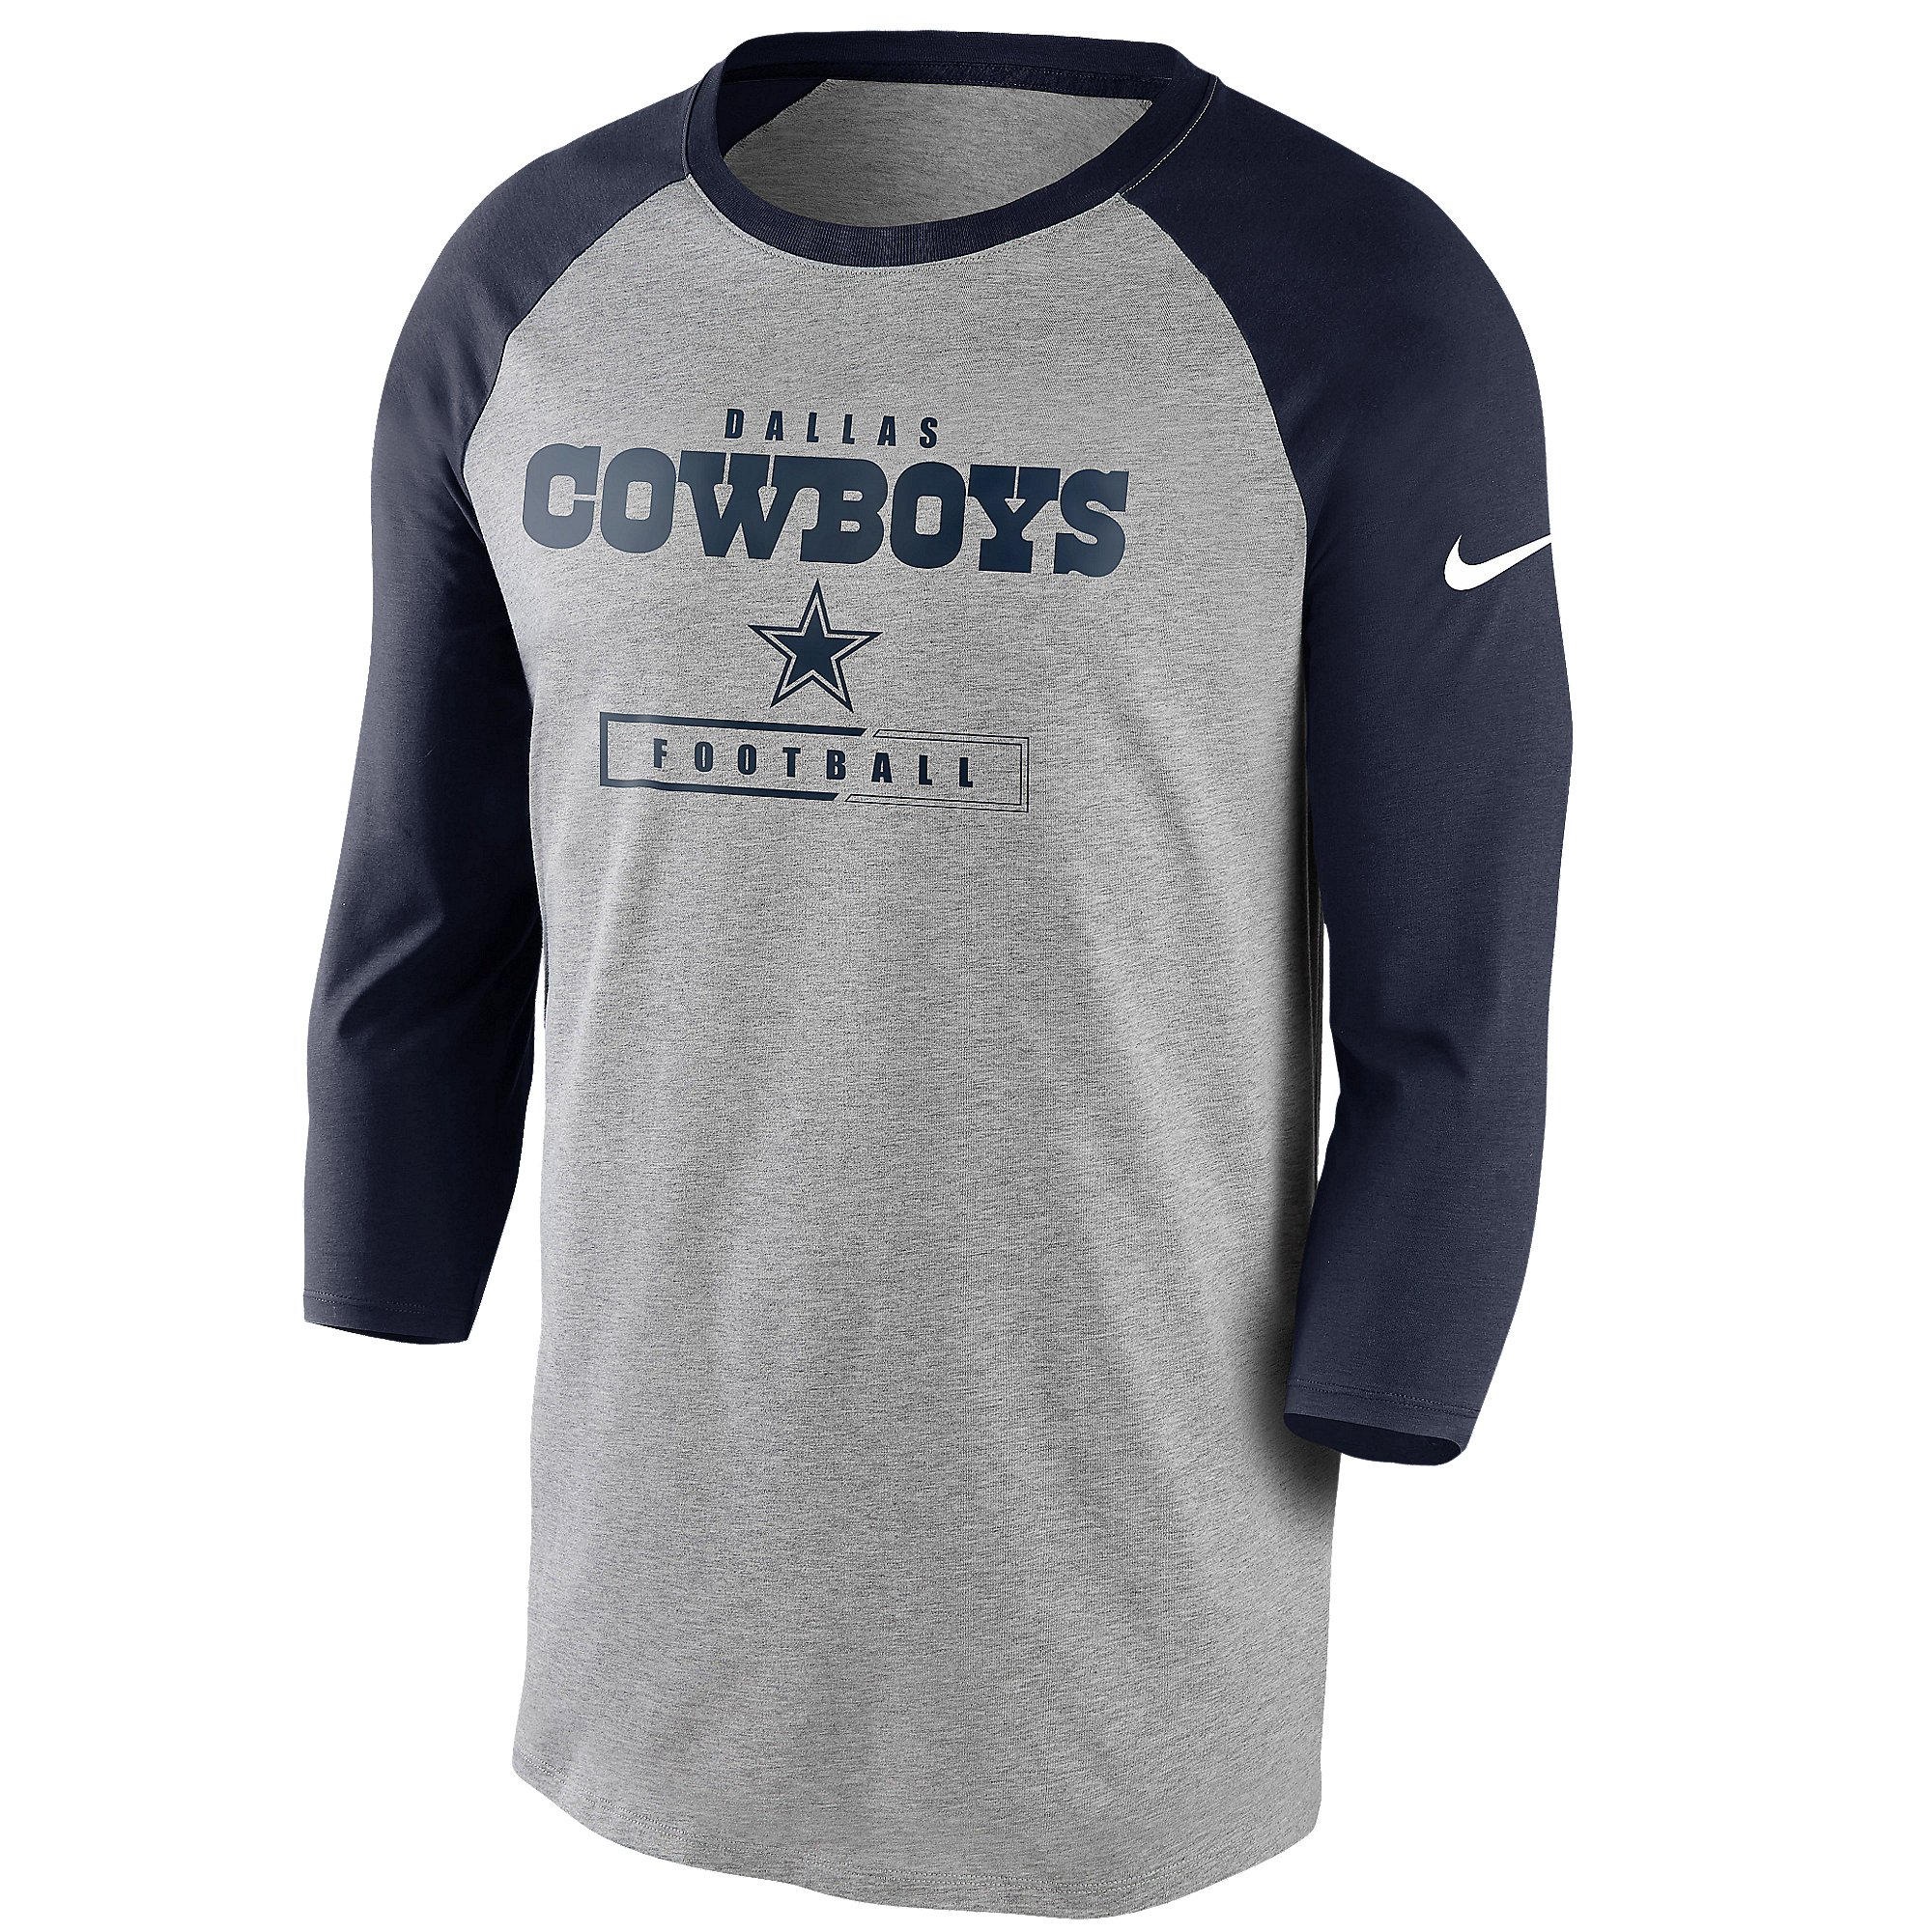 Dallas Cowboys Nike Mens Wordmark Football All 3/4 Sleeve Raglan T-Shirt